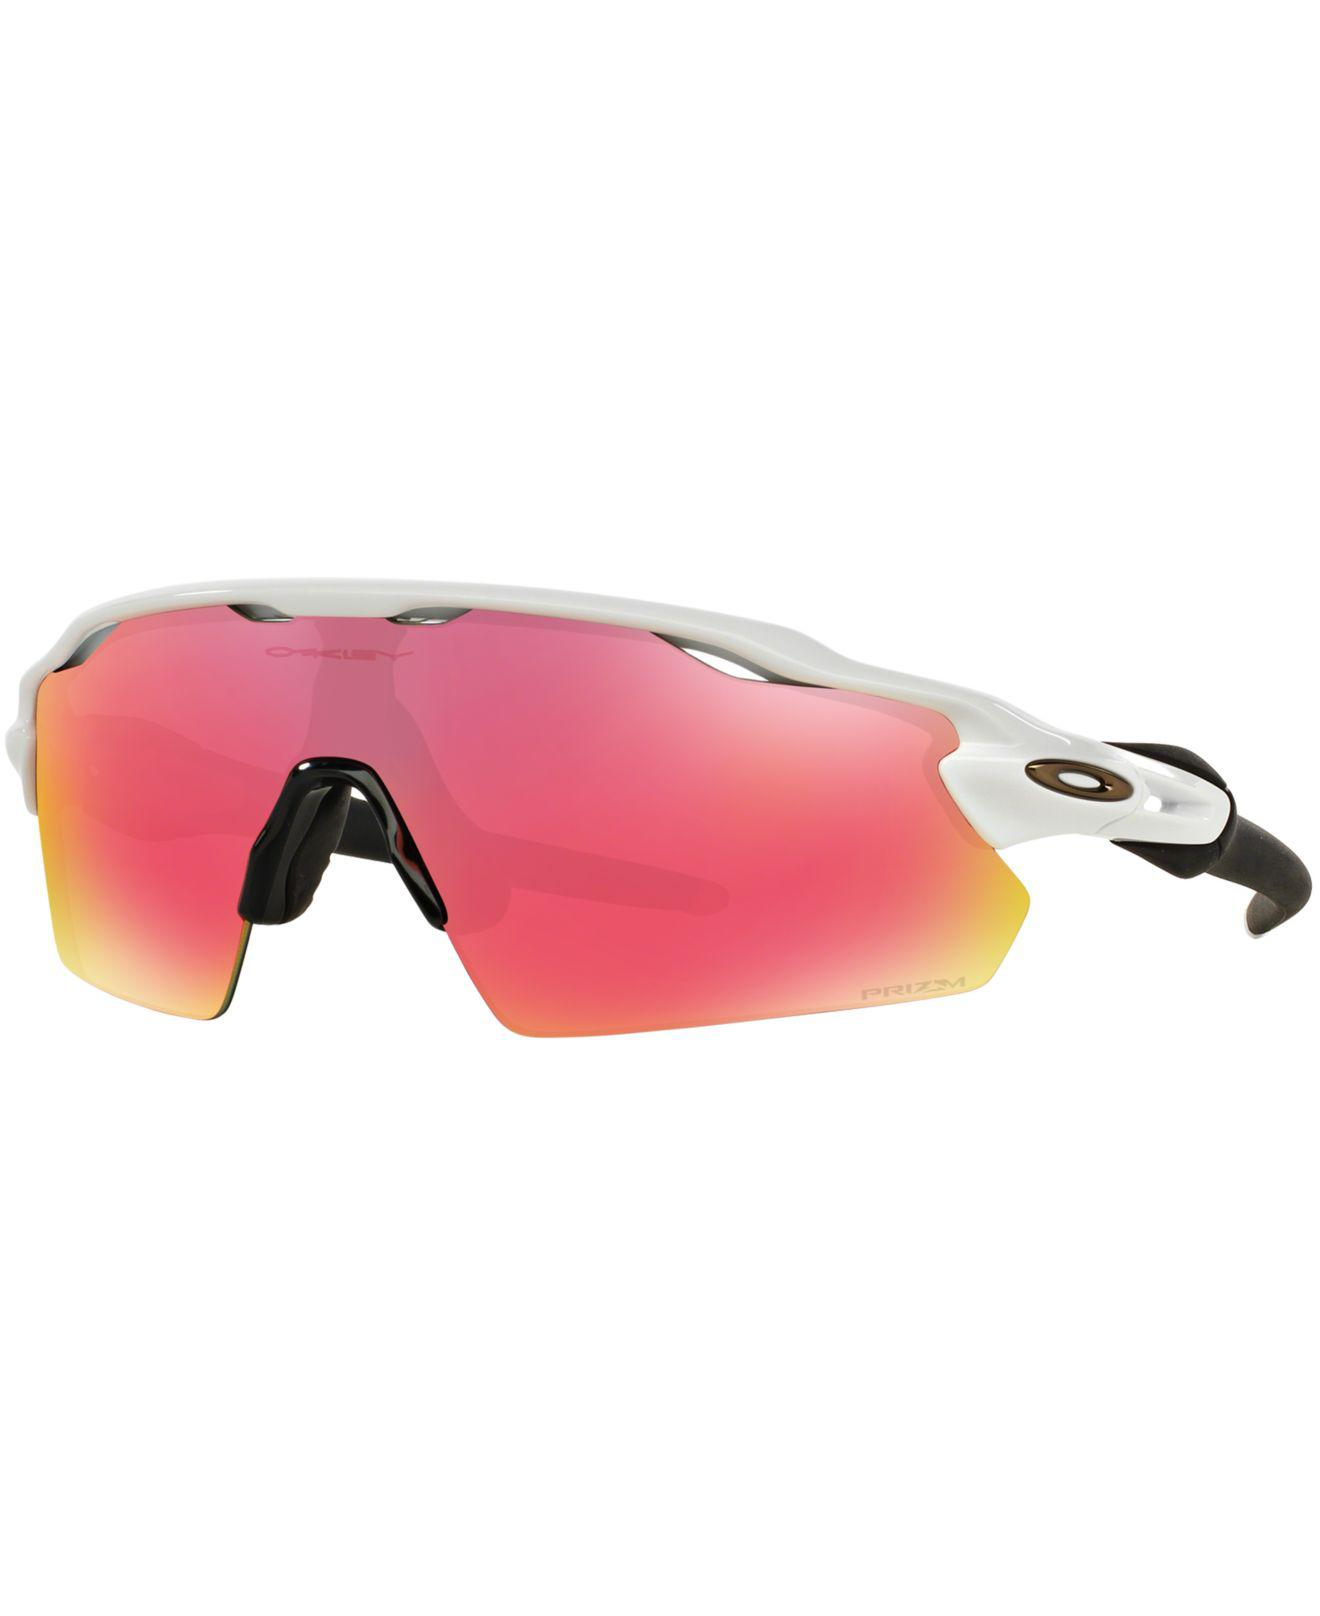 5f63c9367cd Oakley Radar Pitch Golf Sunglasses « One More Soul